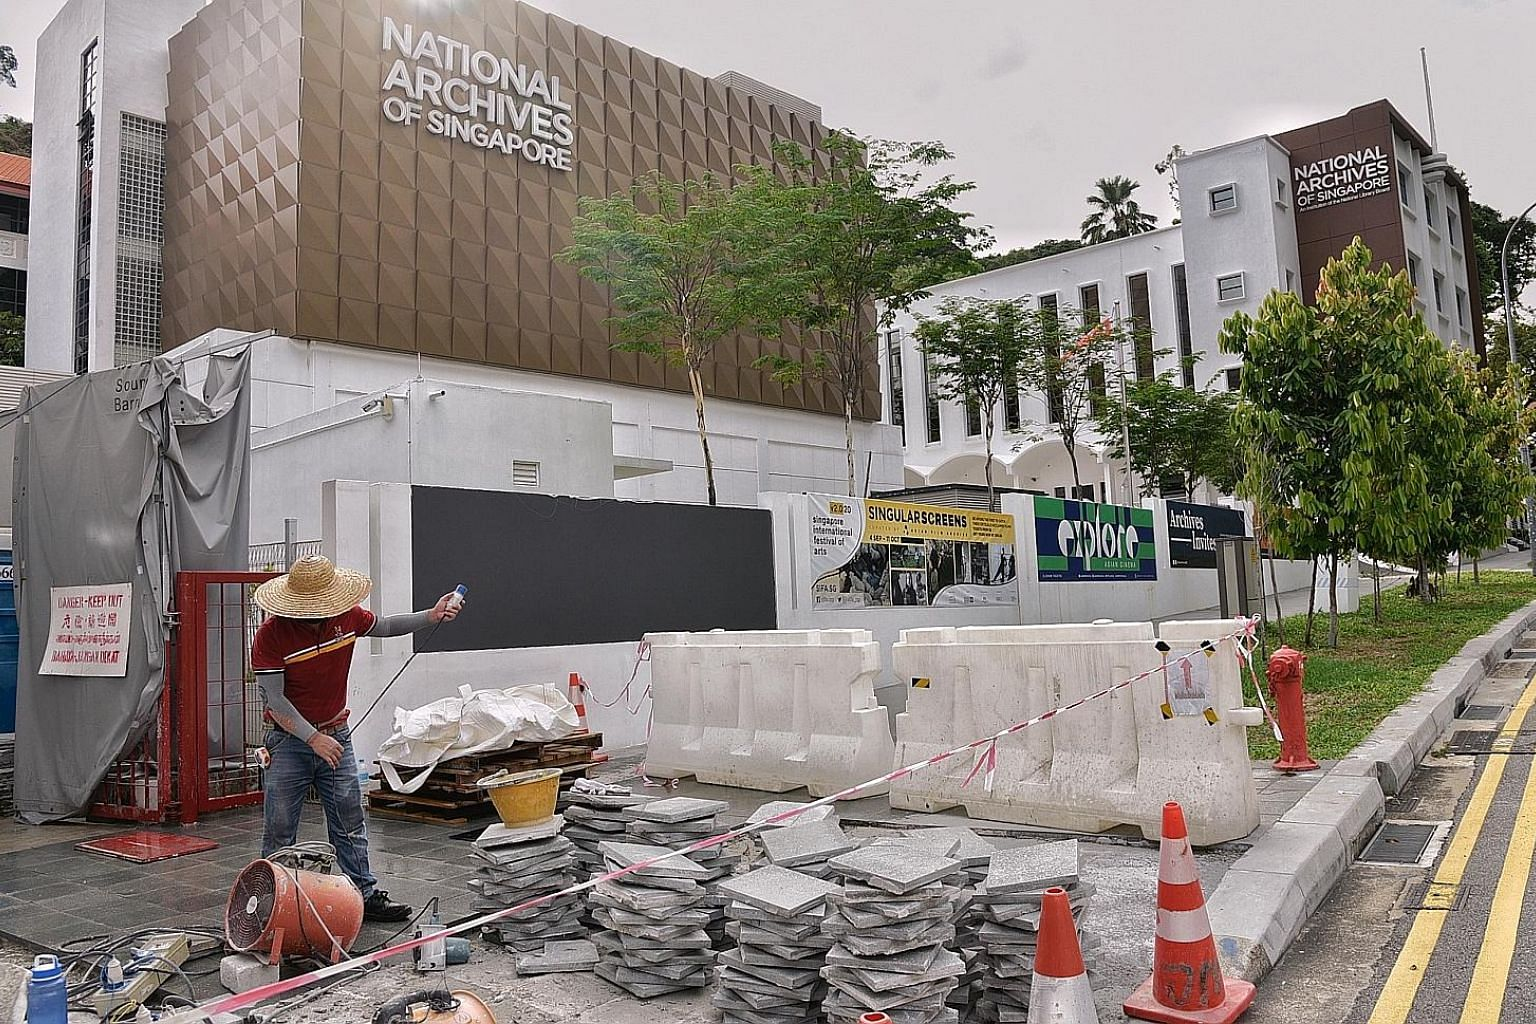 The revamp of the National Archives of Singapore building - which reopened in April last year after an 18-month makeover - was found to have exceeded the budget by $1.72 million due to a lack of scrutiny from National Library Board officers, said the